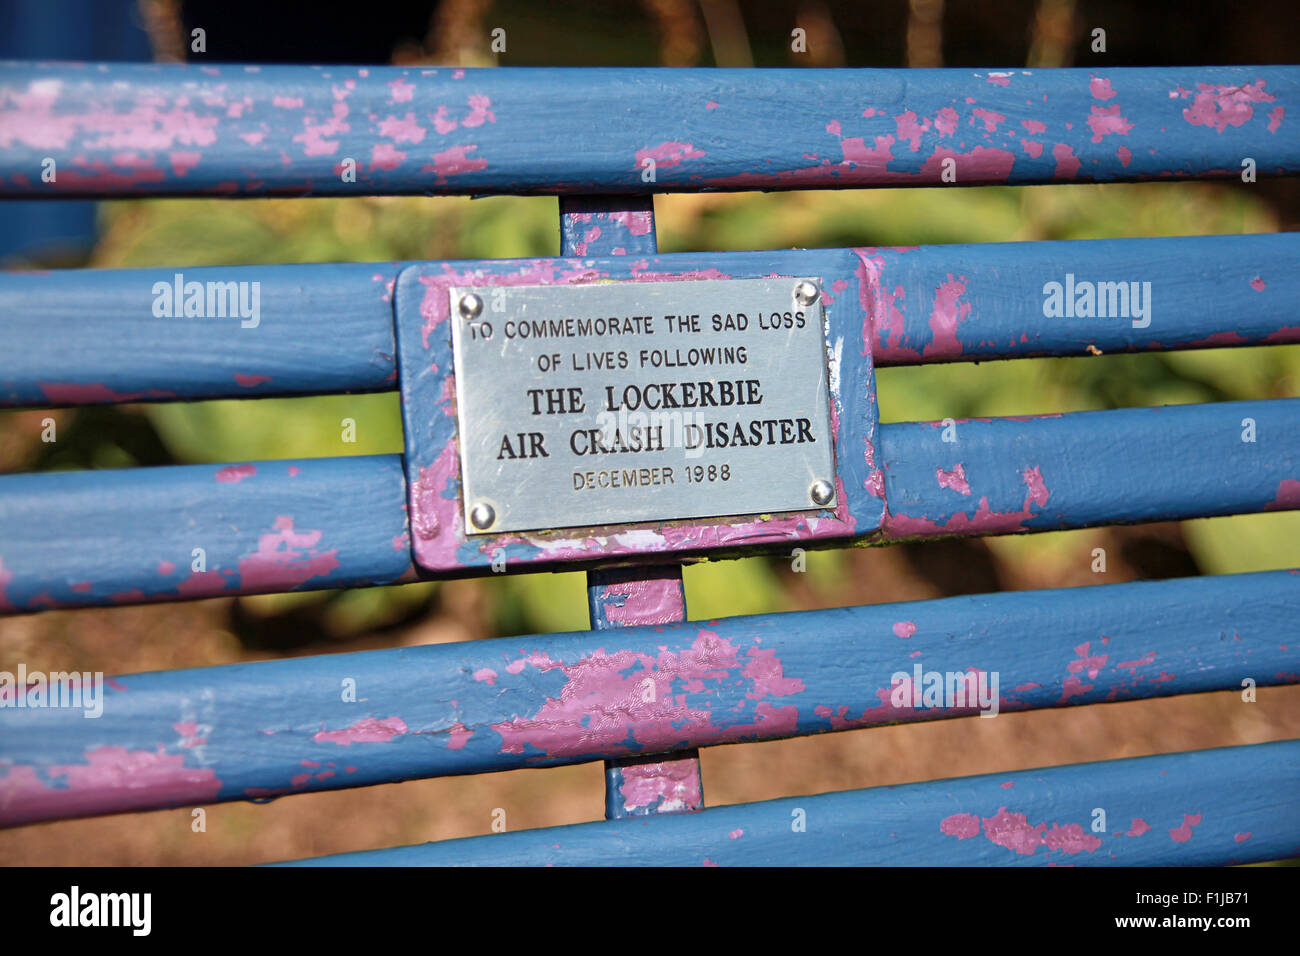 Lockerbie PanAm103 In Rememberance Memorial bench, Scotland - Stock Image